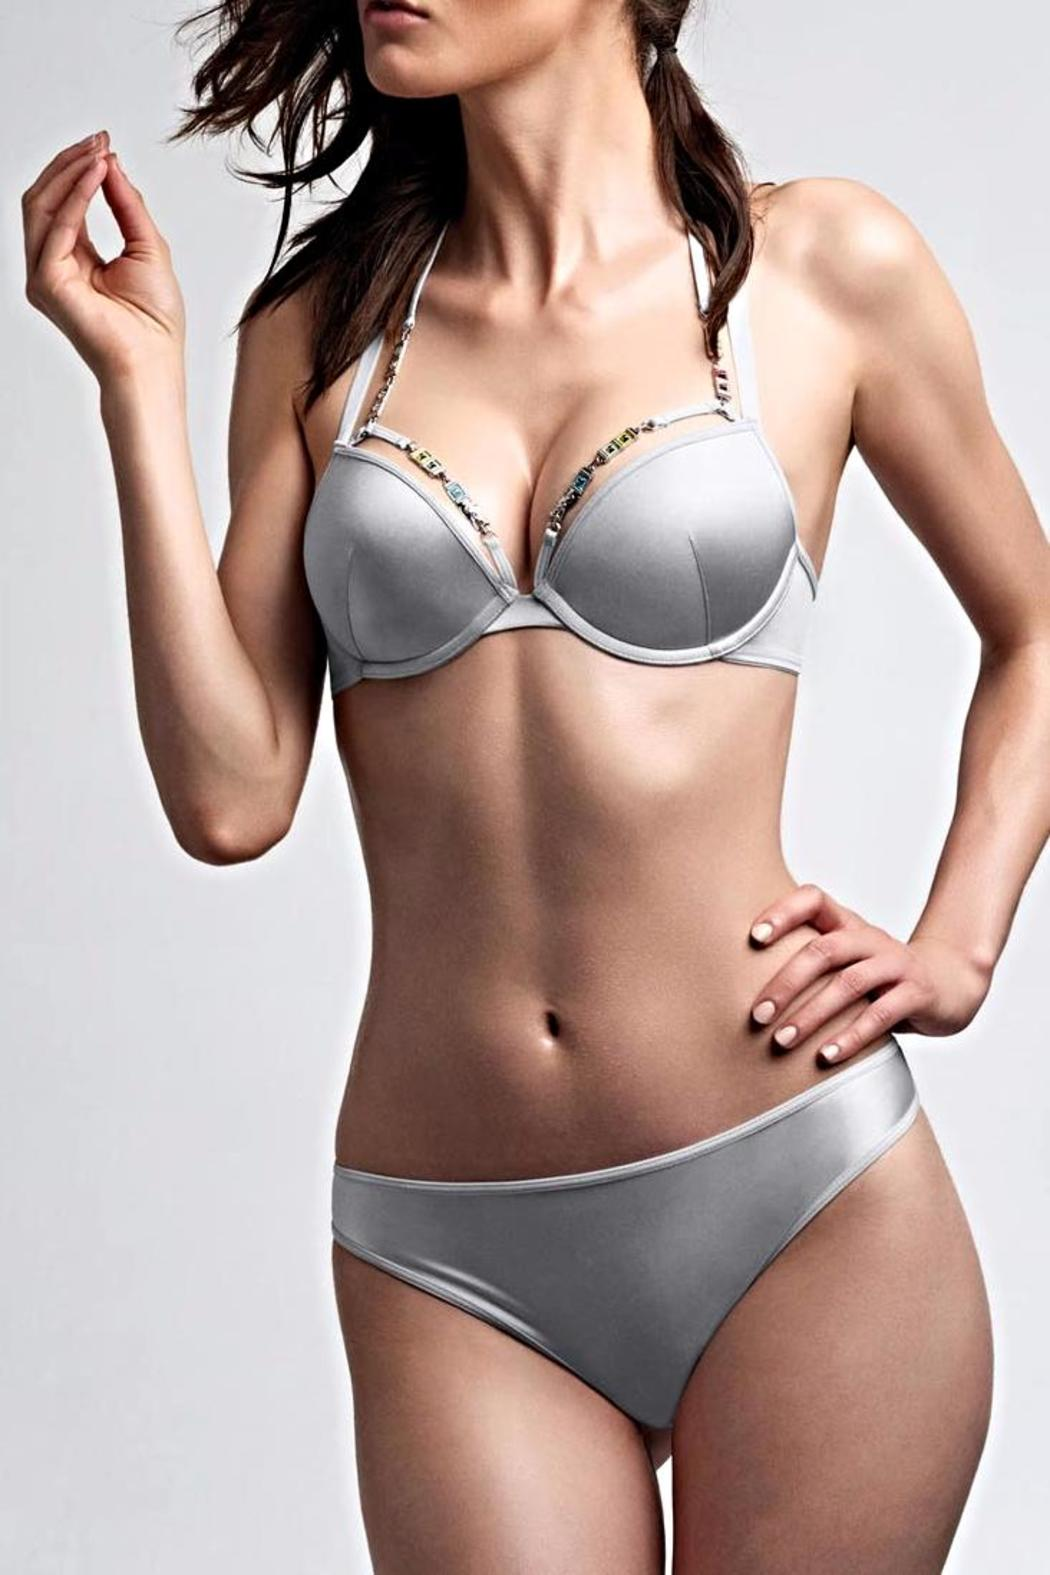 1cb6605060dcd marlies dekkers Silver Pushup Bra from Canada by Blue Sky Fashions ...